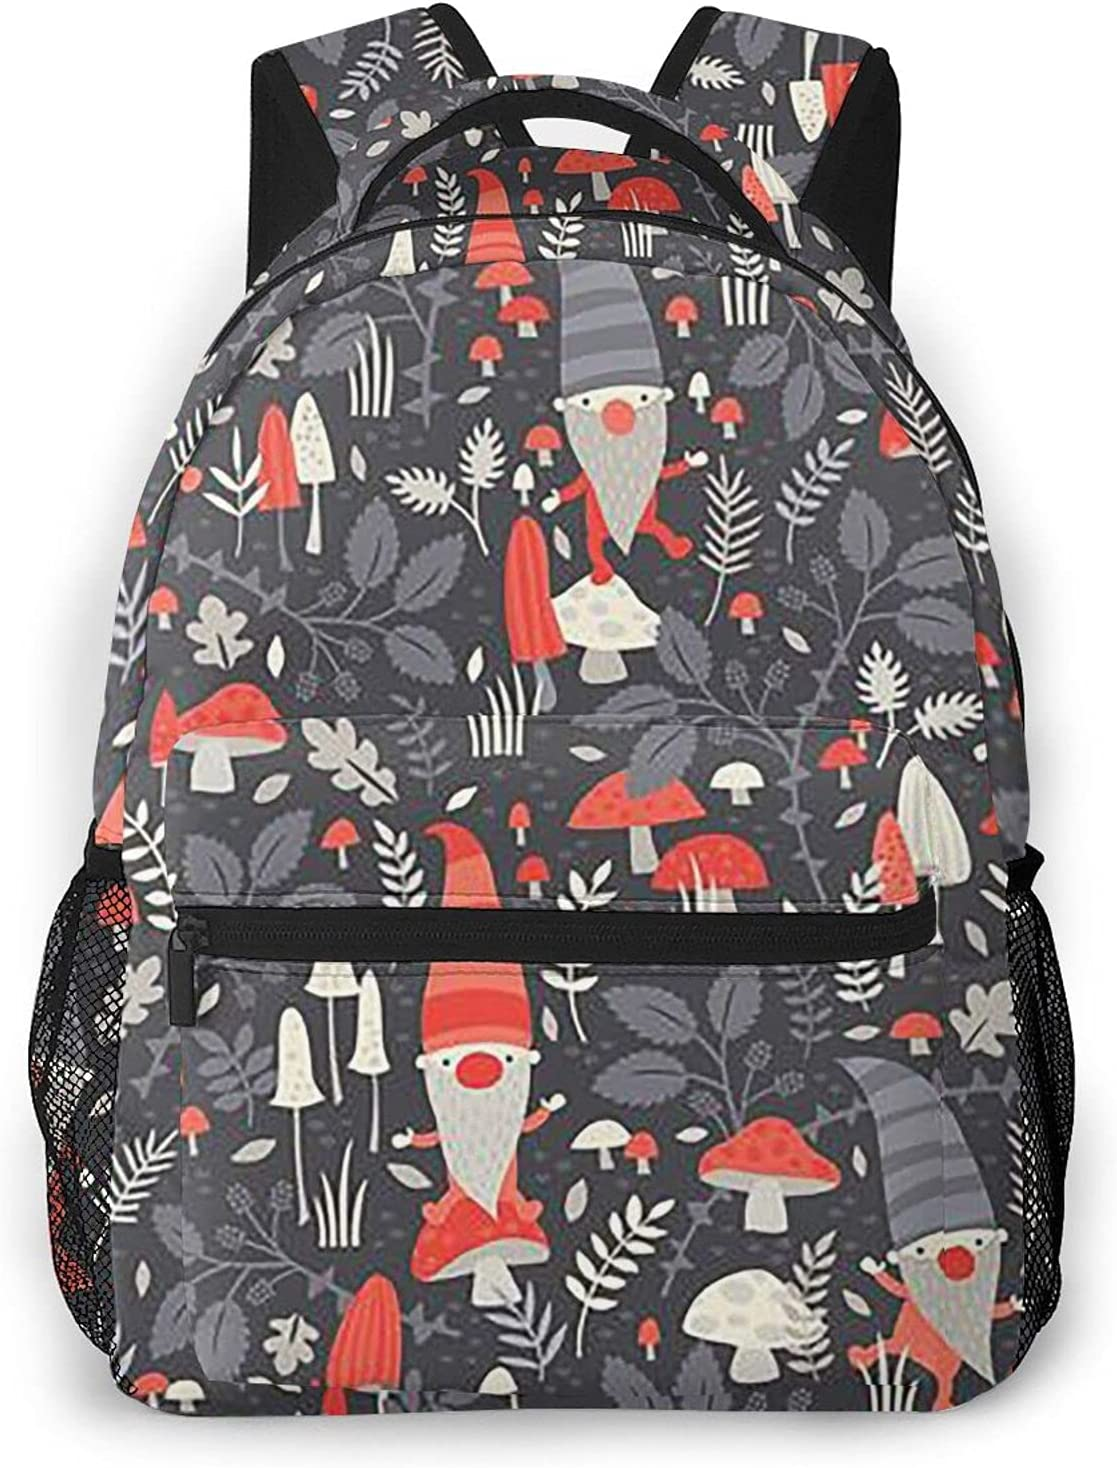 Nordic Gnomes All stores are sold Travel Daypack Student Li Backpack Rucksack Laptop Challenge the lowest price of Japan ☆